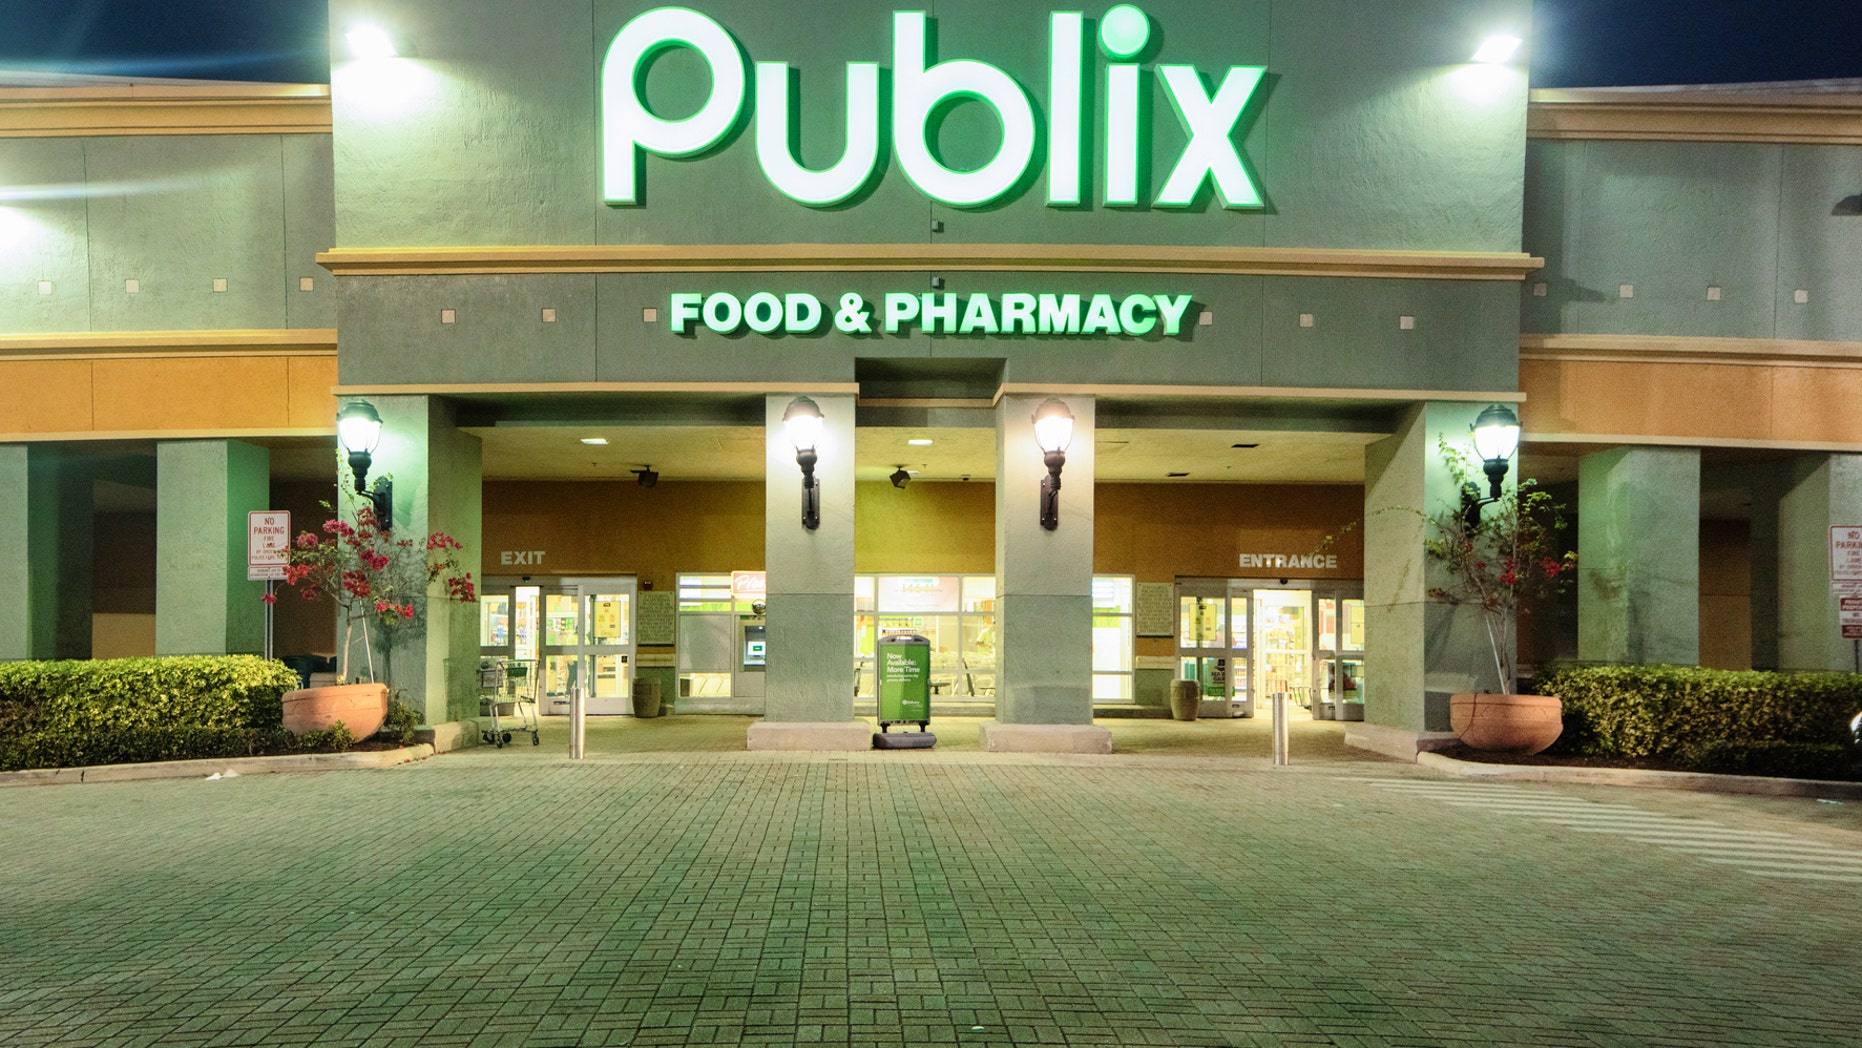 According to an alert posted to Publix' website, the voluntary recall involves popcorn chicken sourced from Pilgrim's Pride, which is labeled as Pierce Chicken.